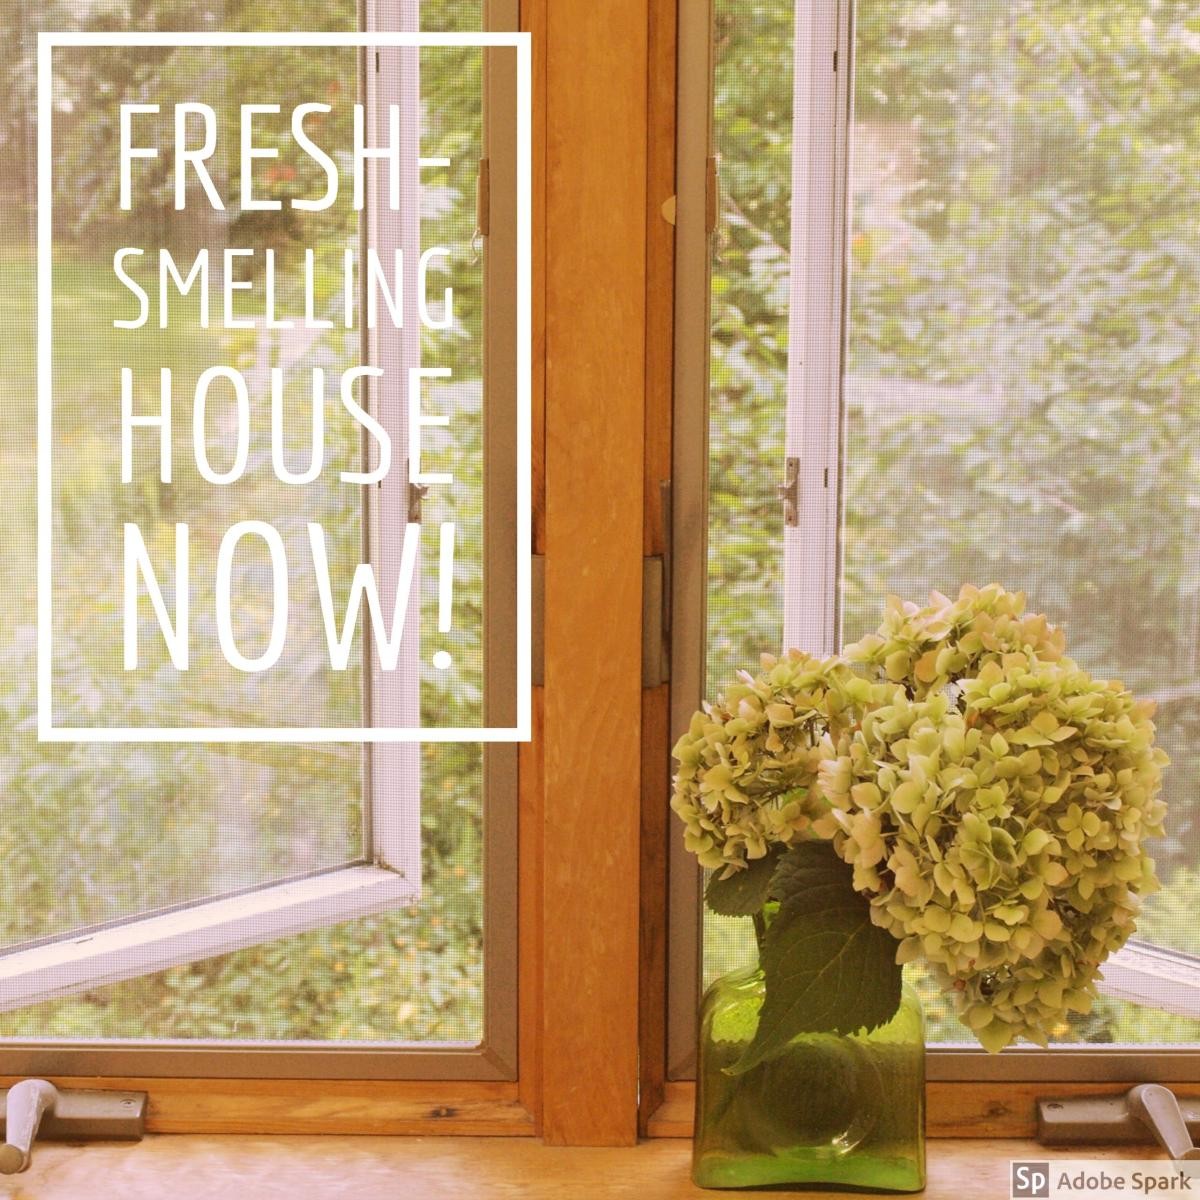 12 Ways to Make Your Home Smell Fabulous